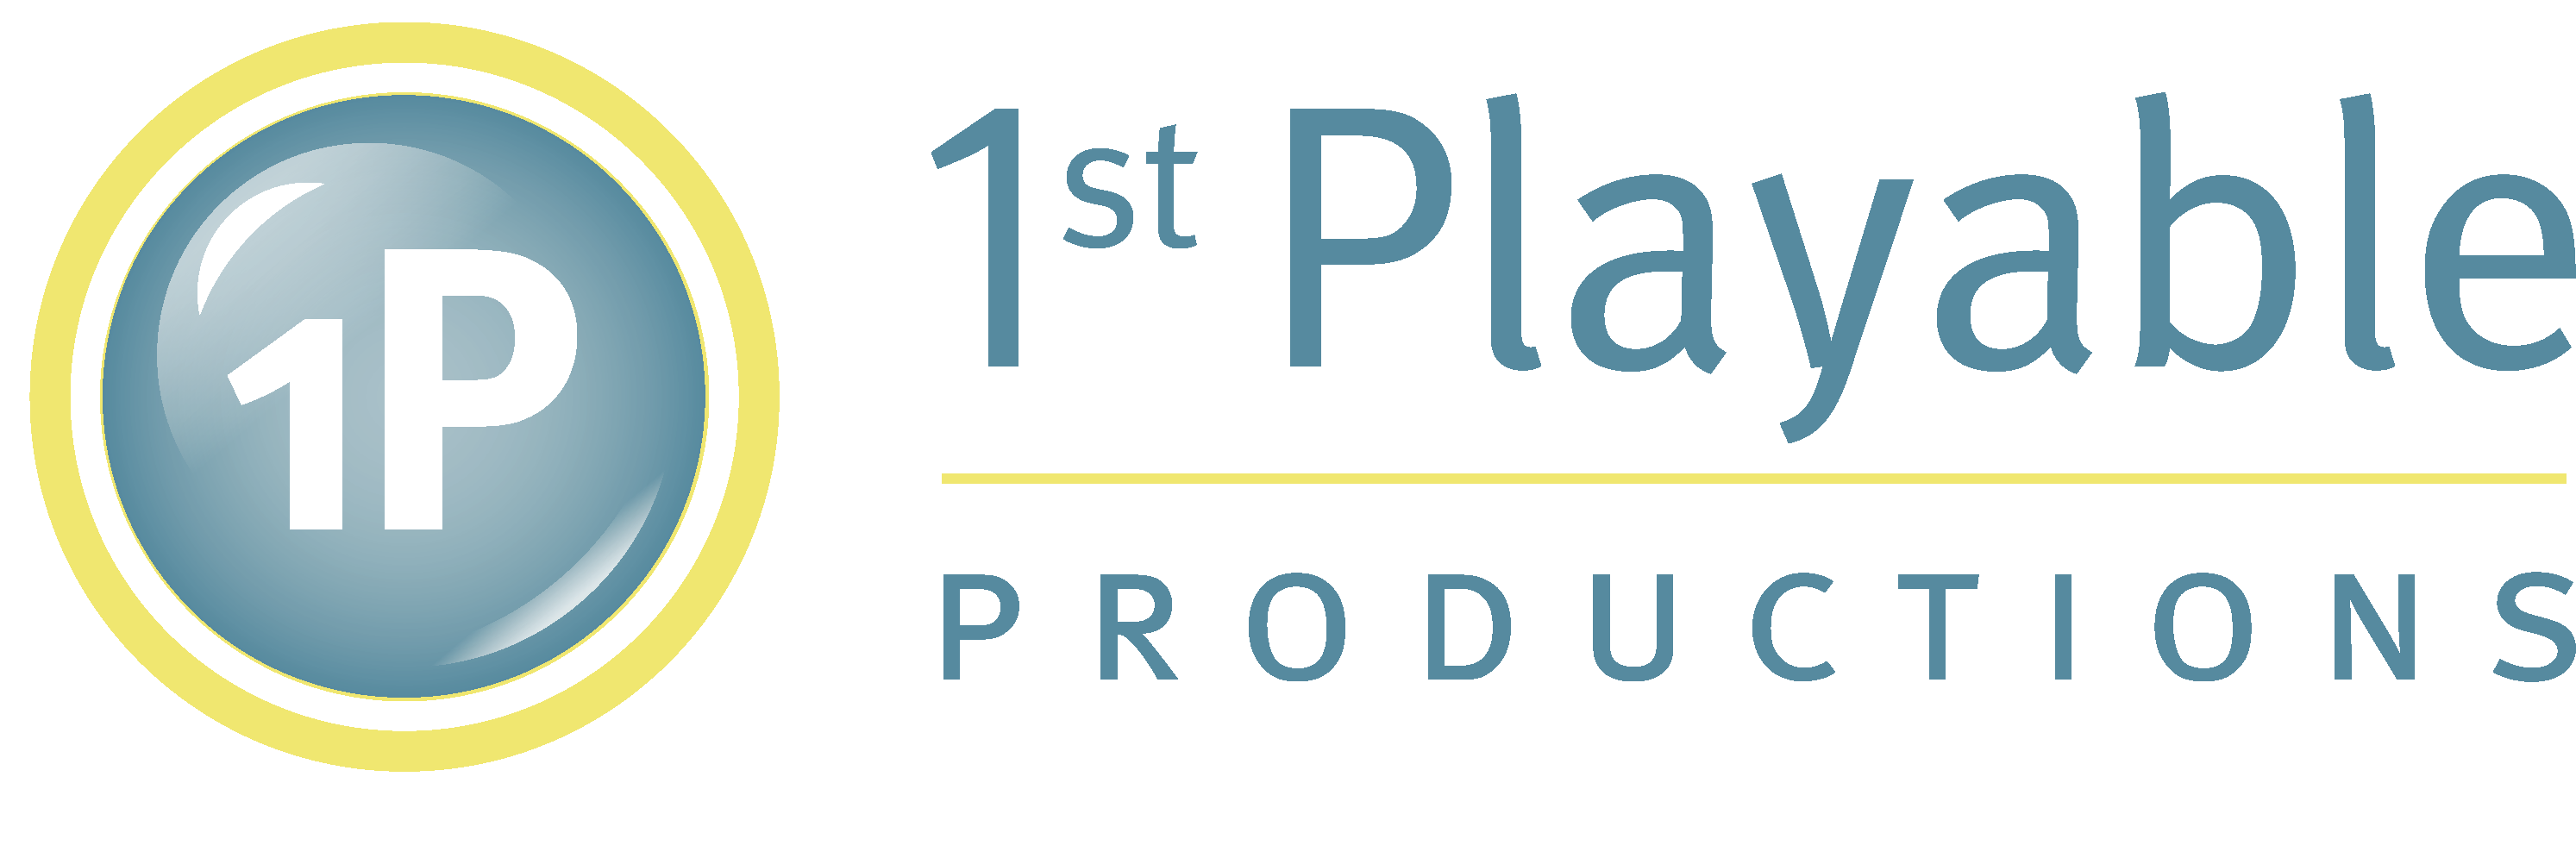 1st Playable Productions logo